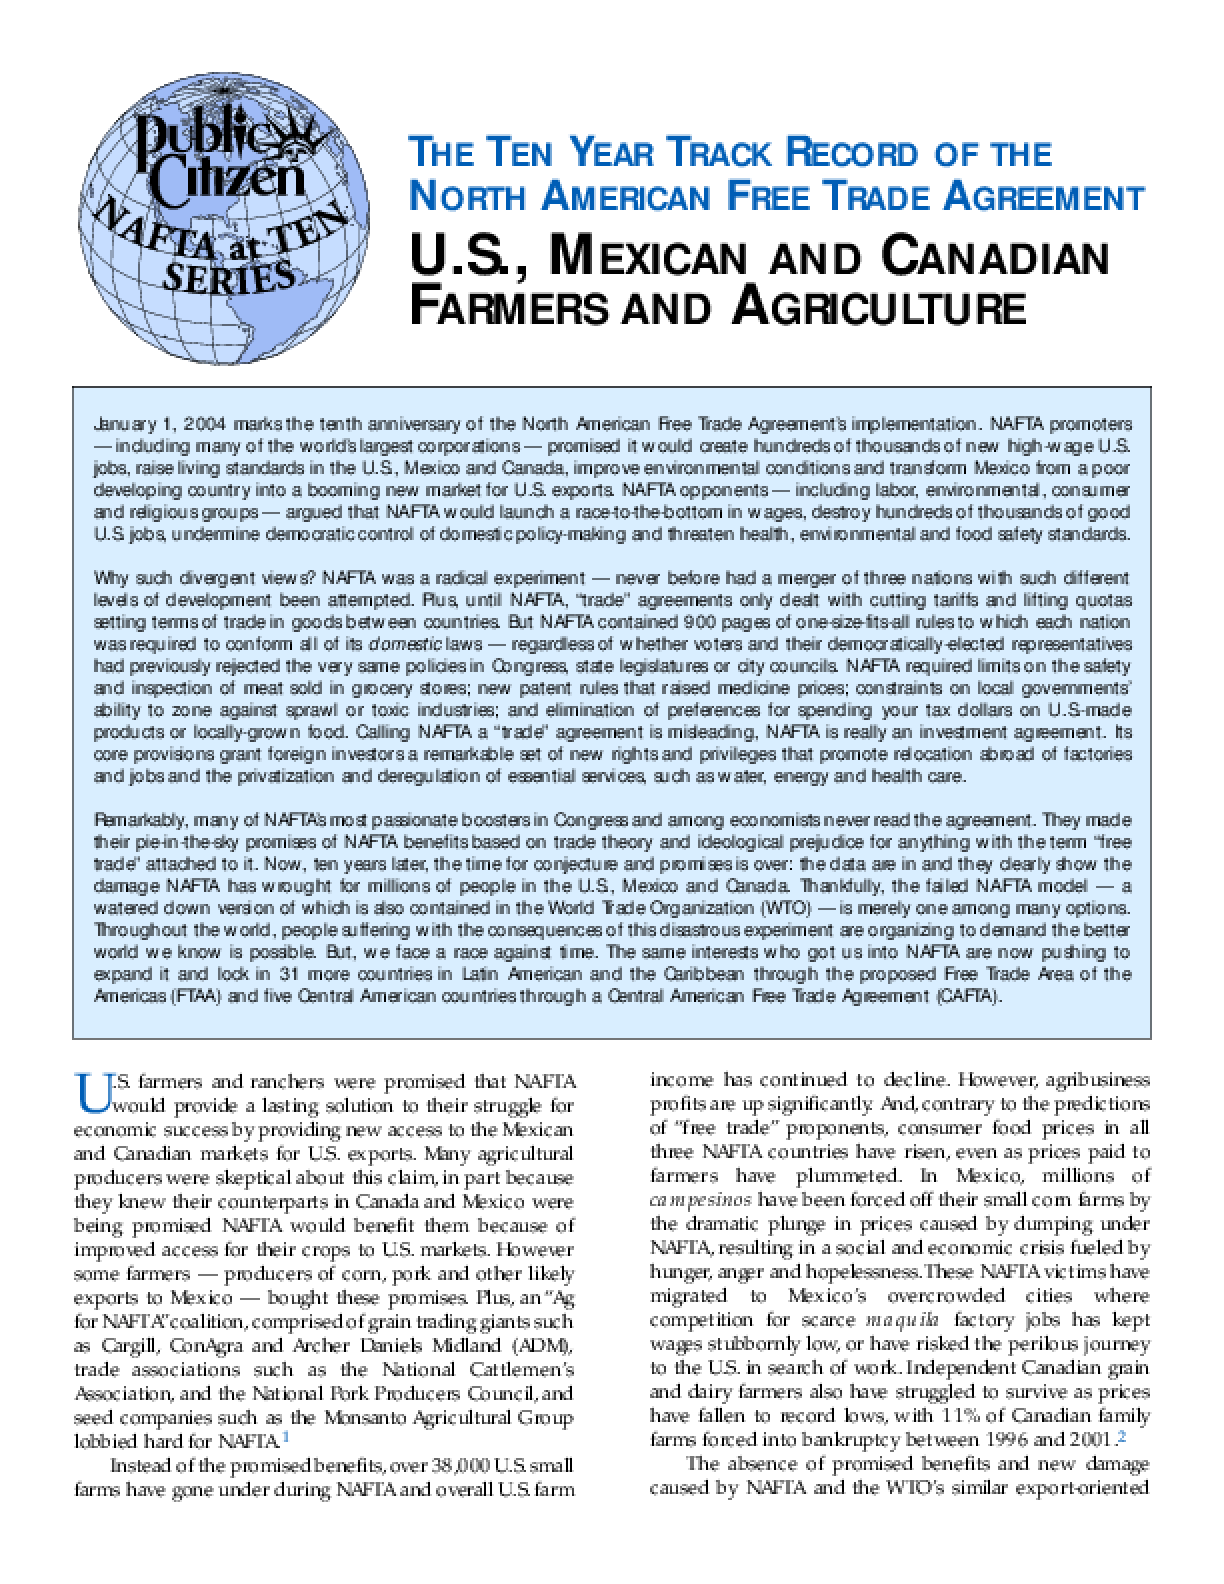 nafta and globalization essay